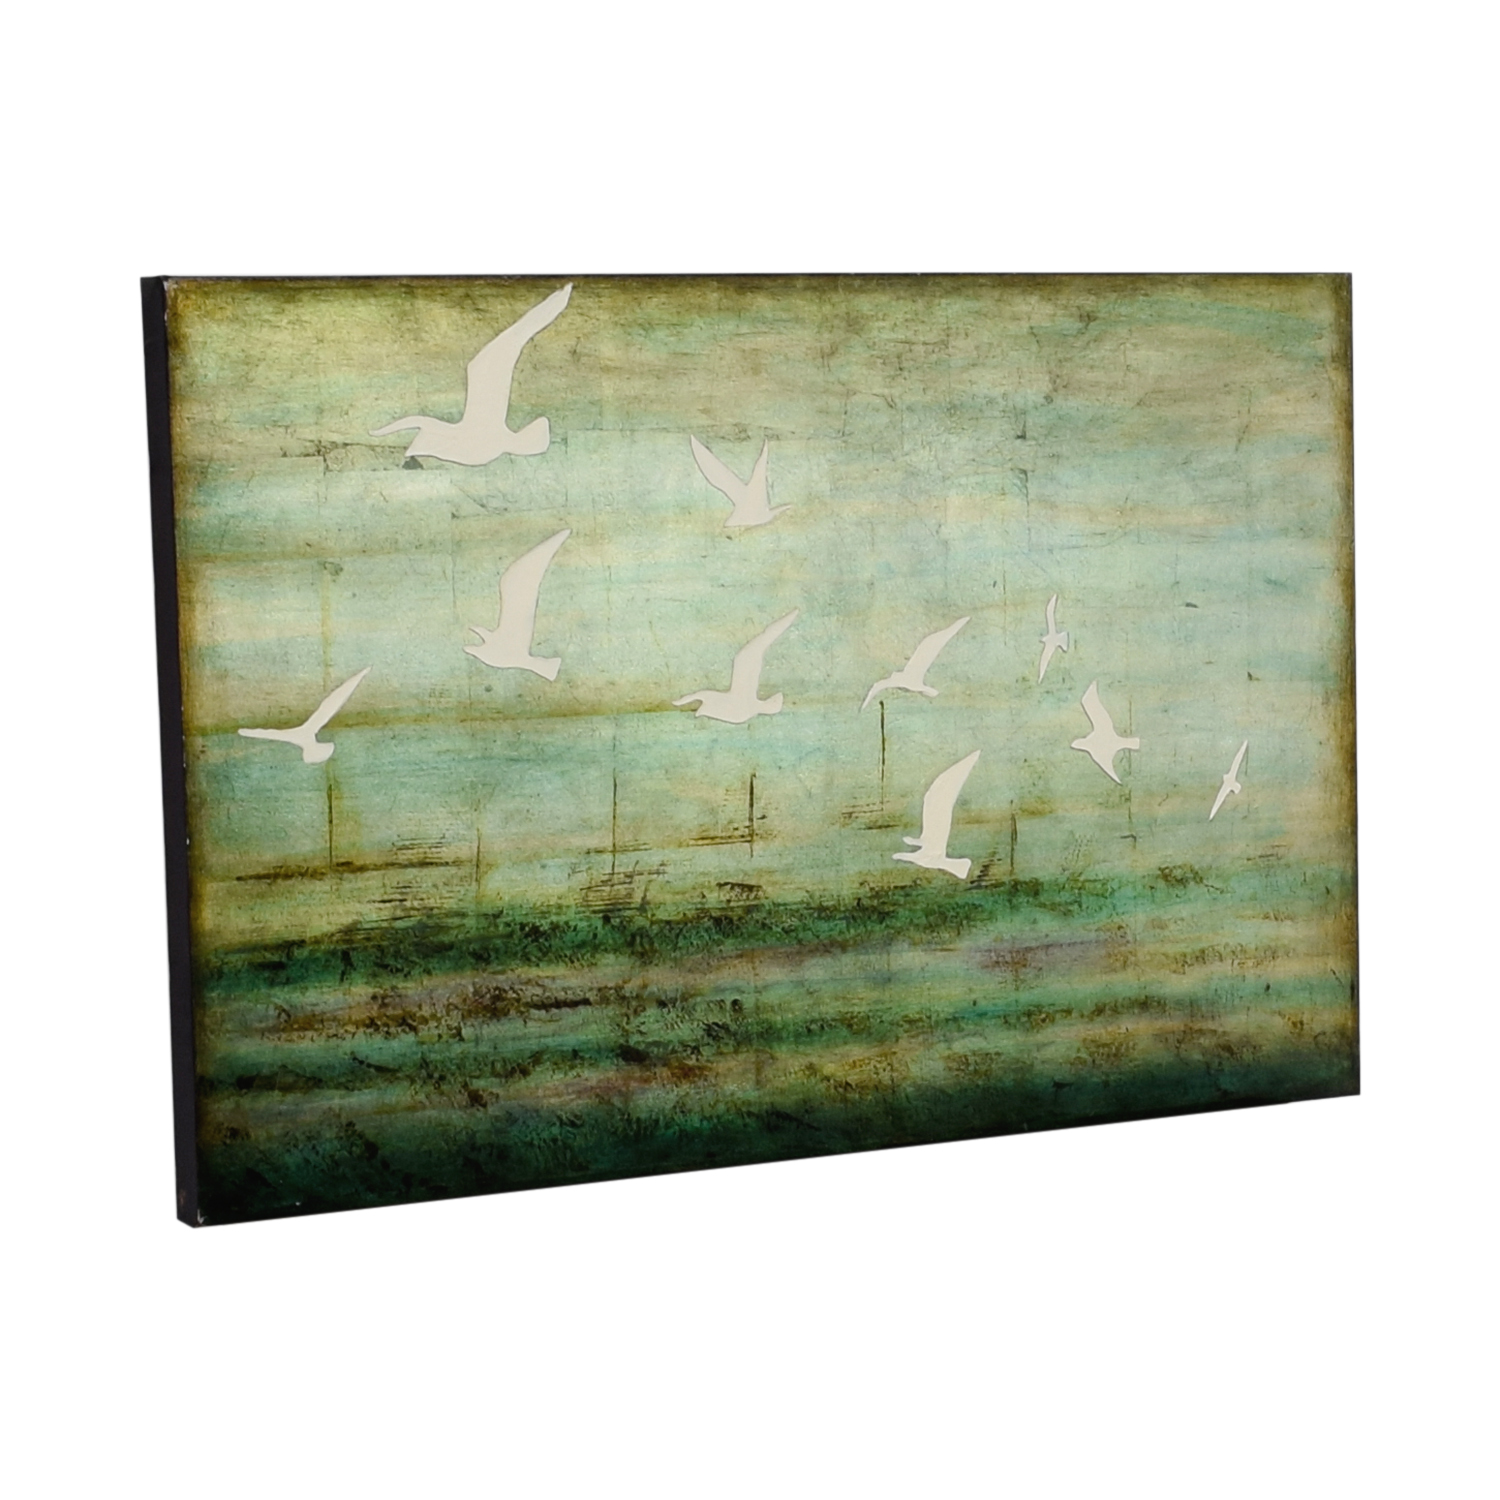 buy West Elm West Elm Green Seagull Canvas online